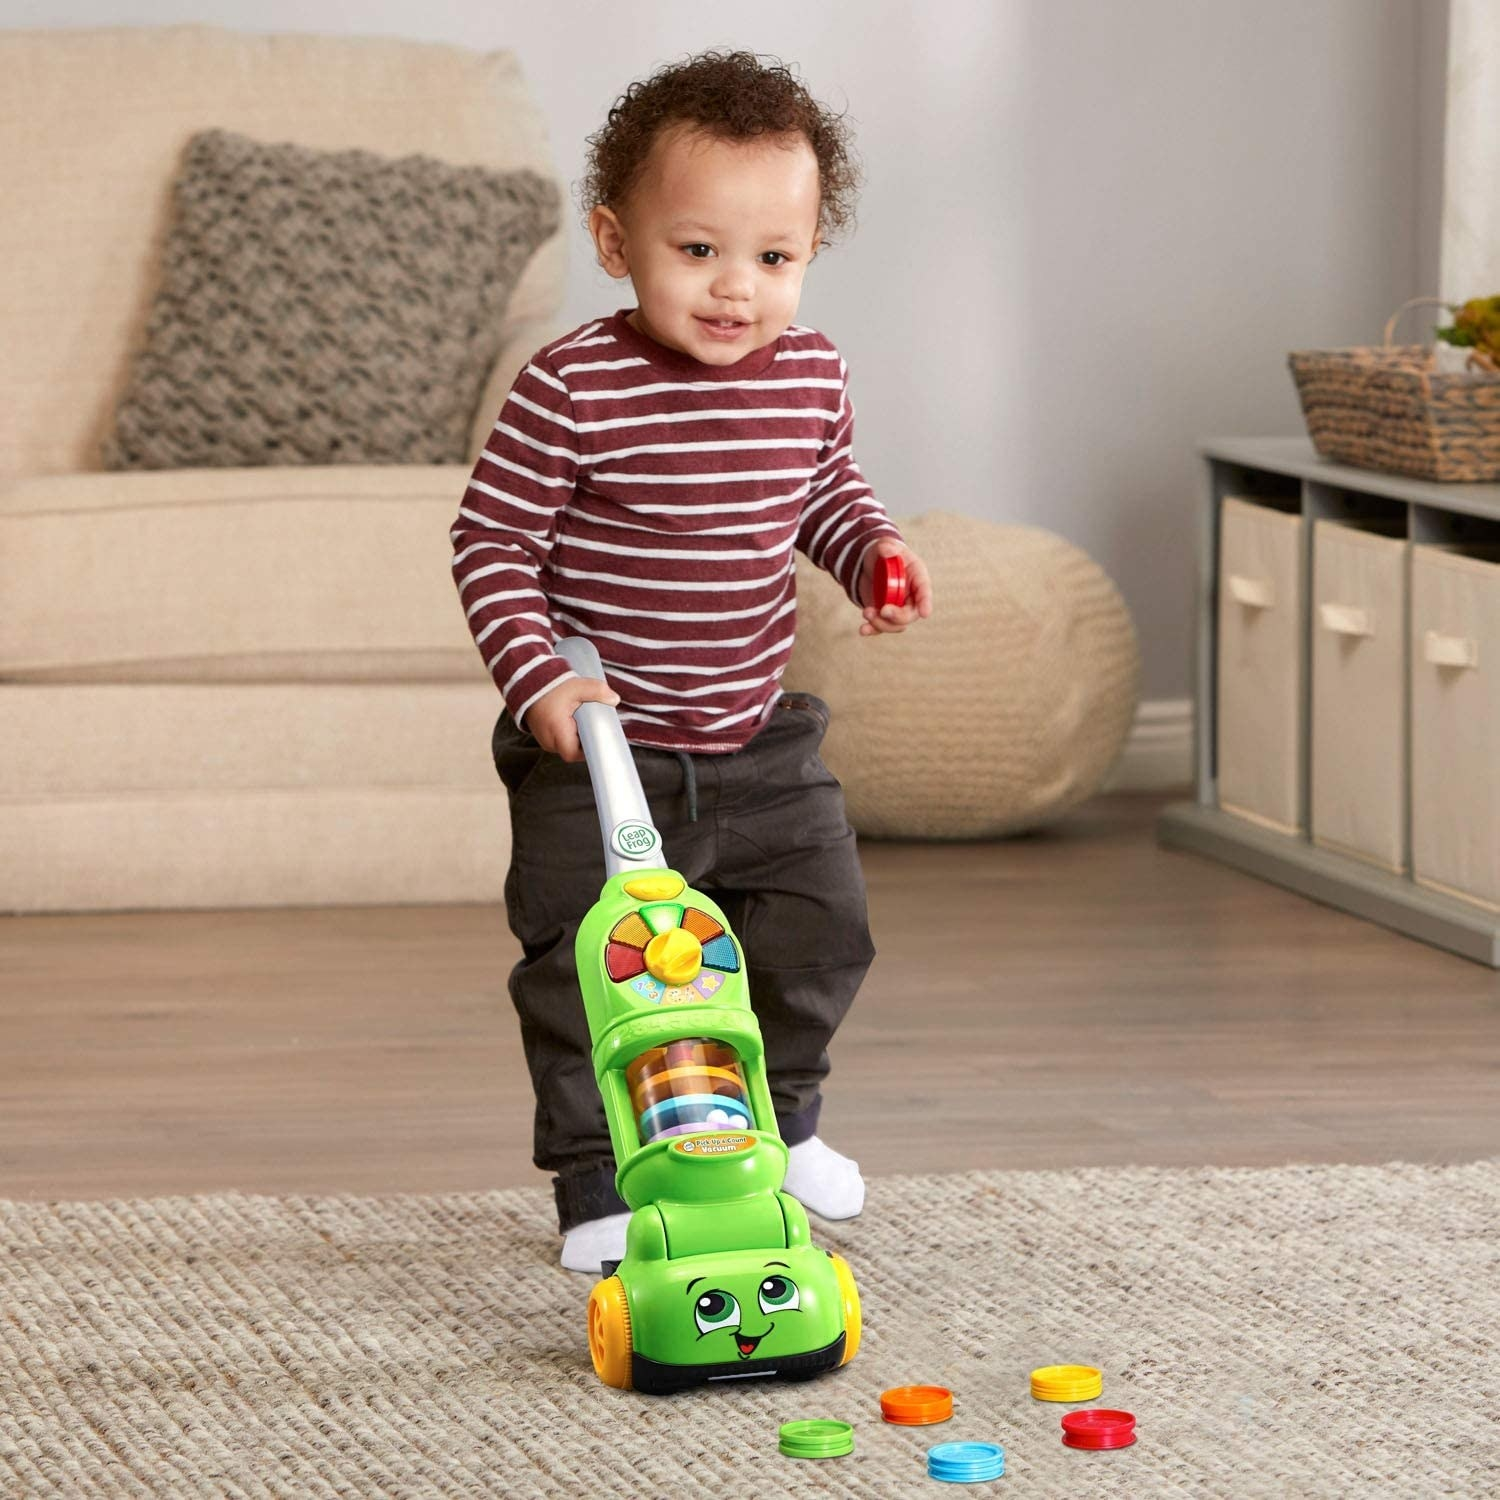 A child model playing with a green plastic vacuum with multi-colored discs